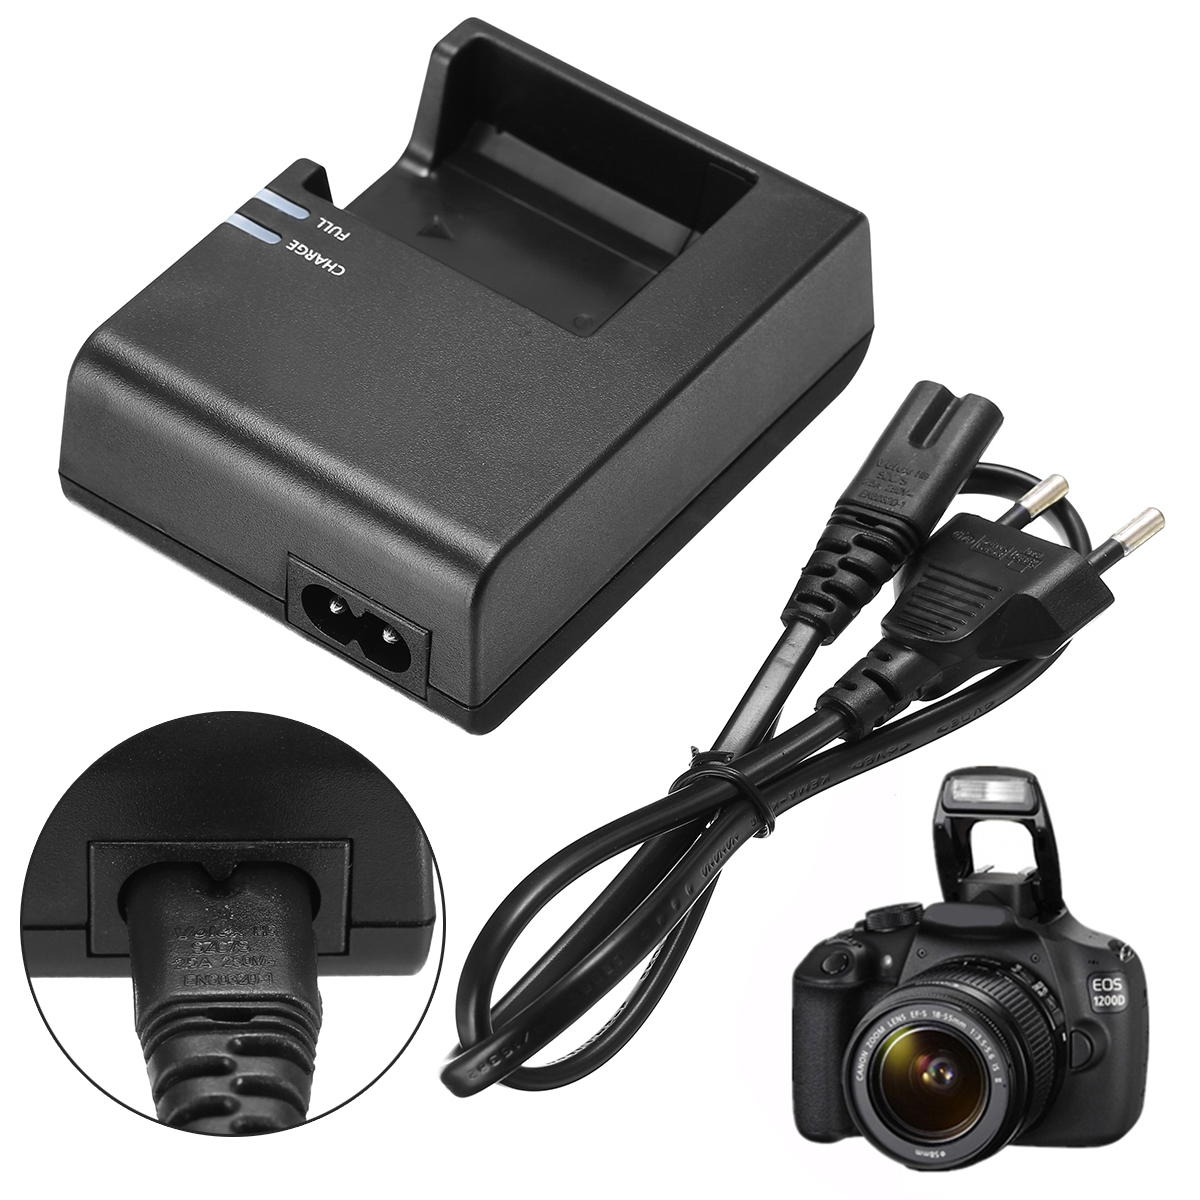 цена на New Arrival 1pc LC-E10C Camera Battery Charger + EU Plug Power Cord For Canon LP-E10 EOS 1100D 1200D Kiss X50 Rebel T3